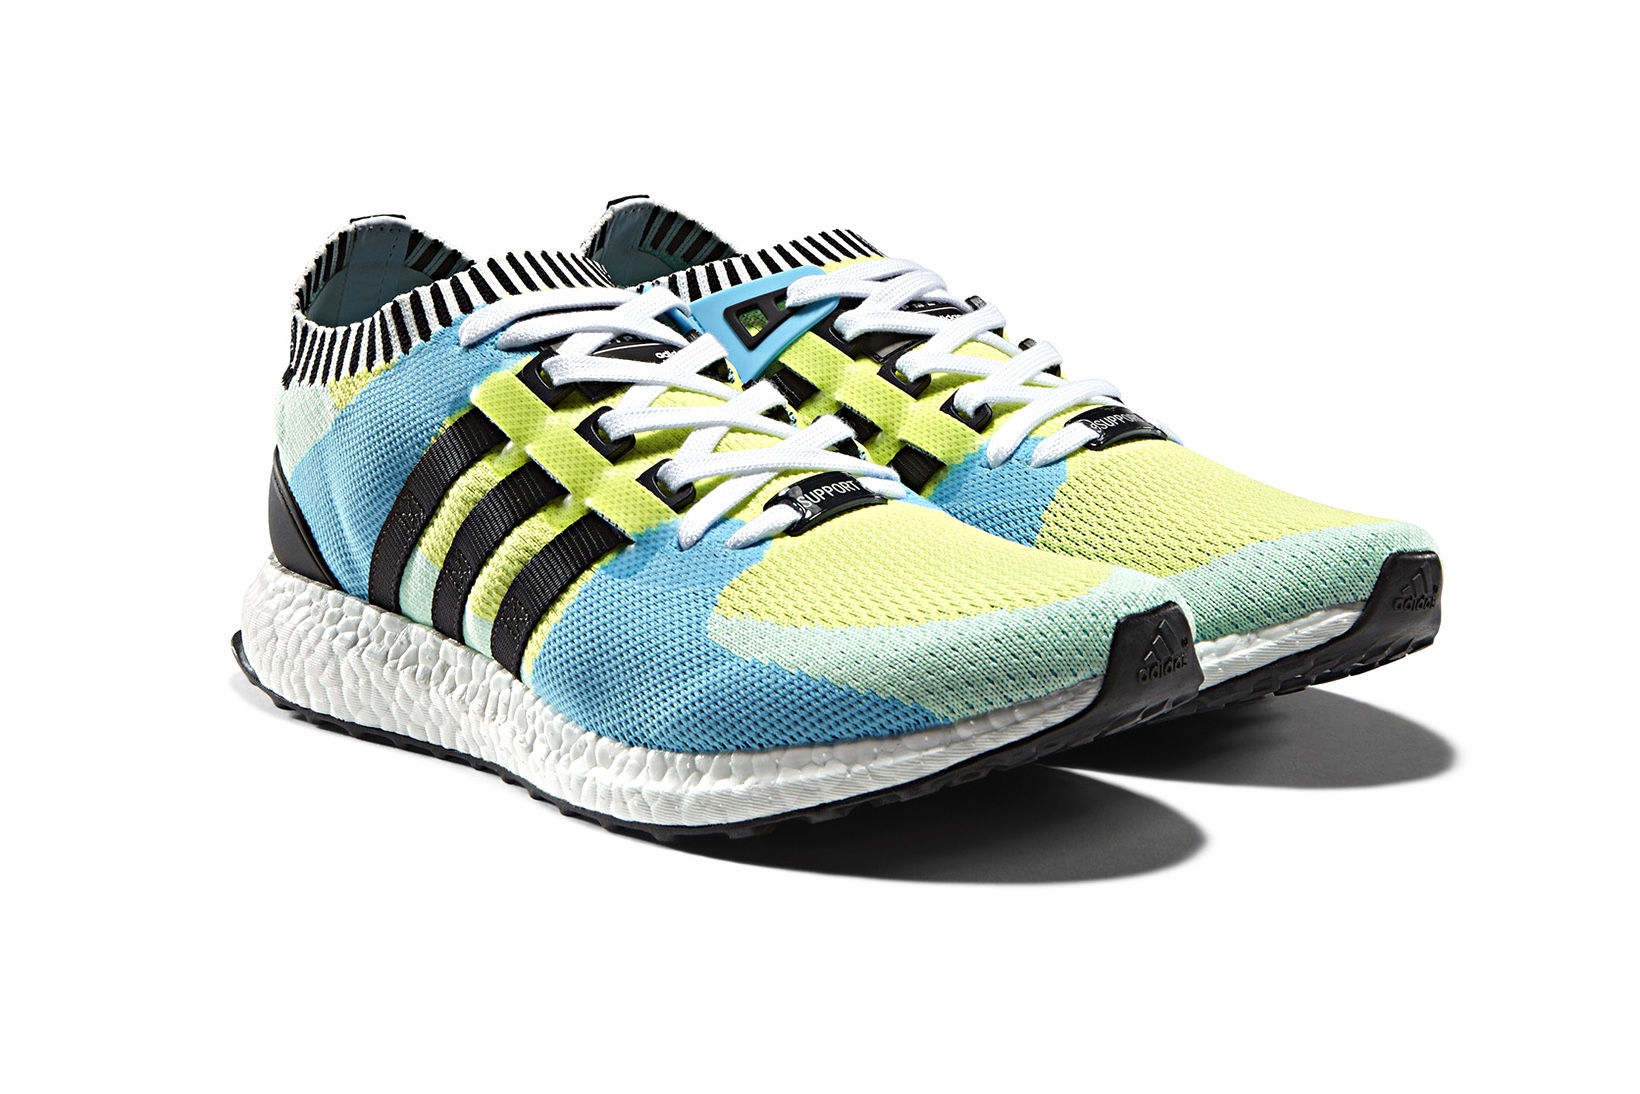 adidas-eqt-support-ultra-pk-01